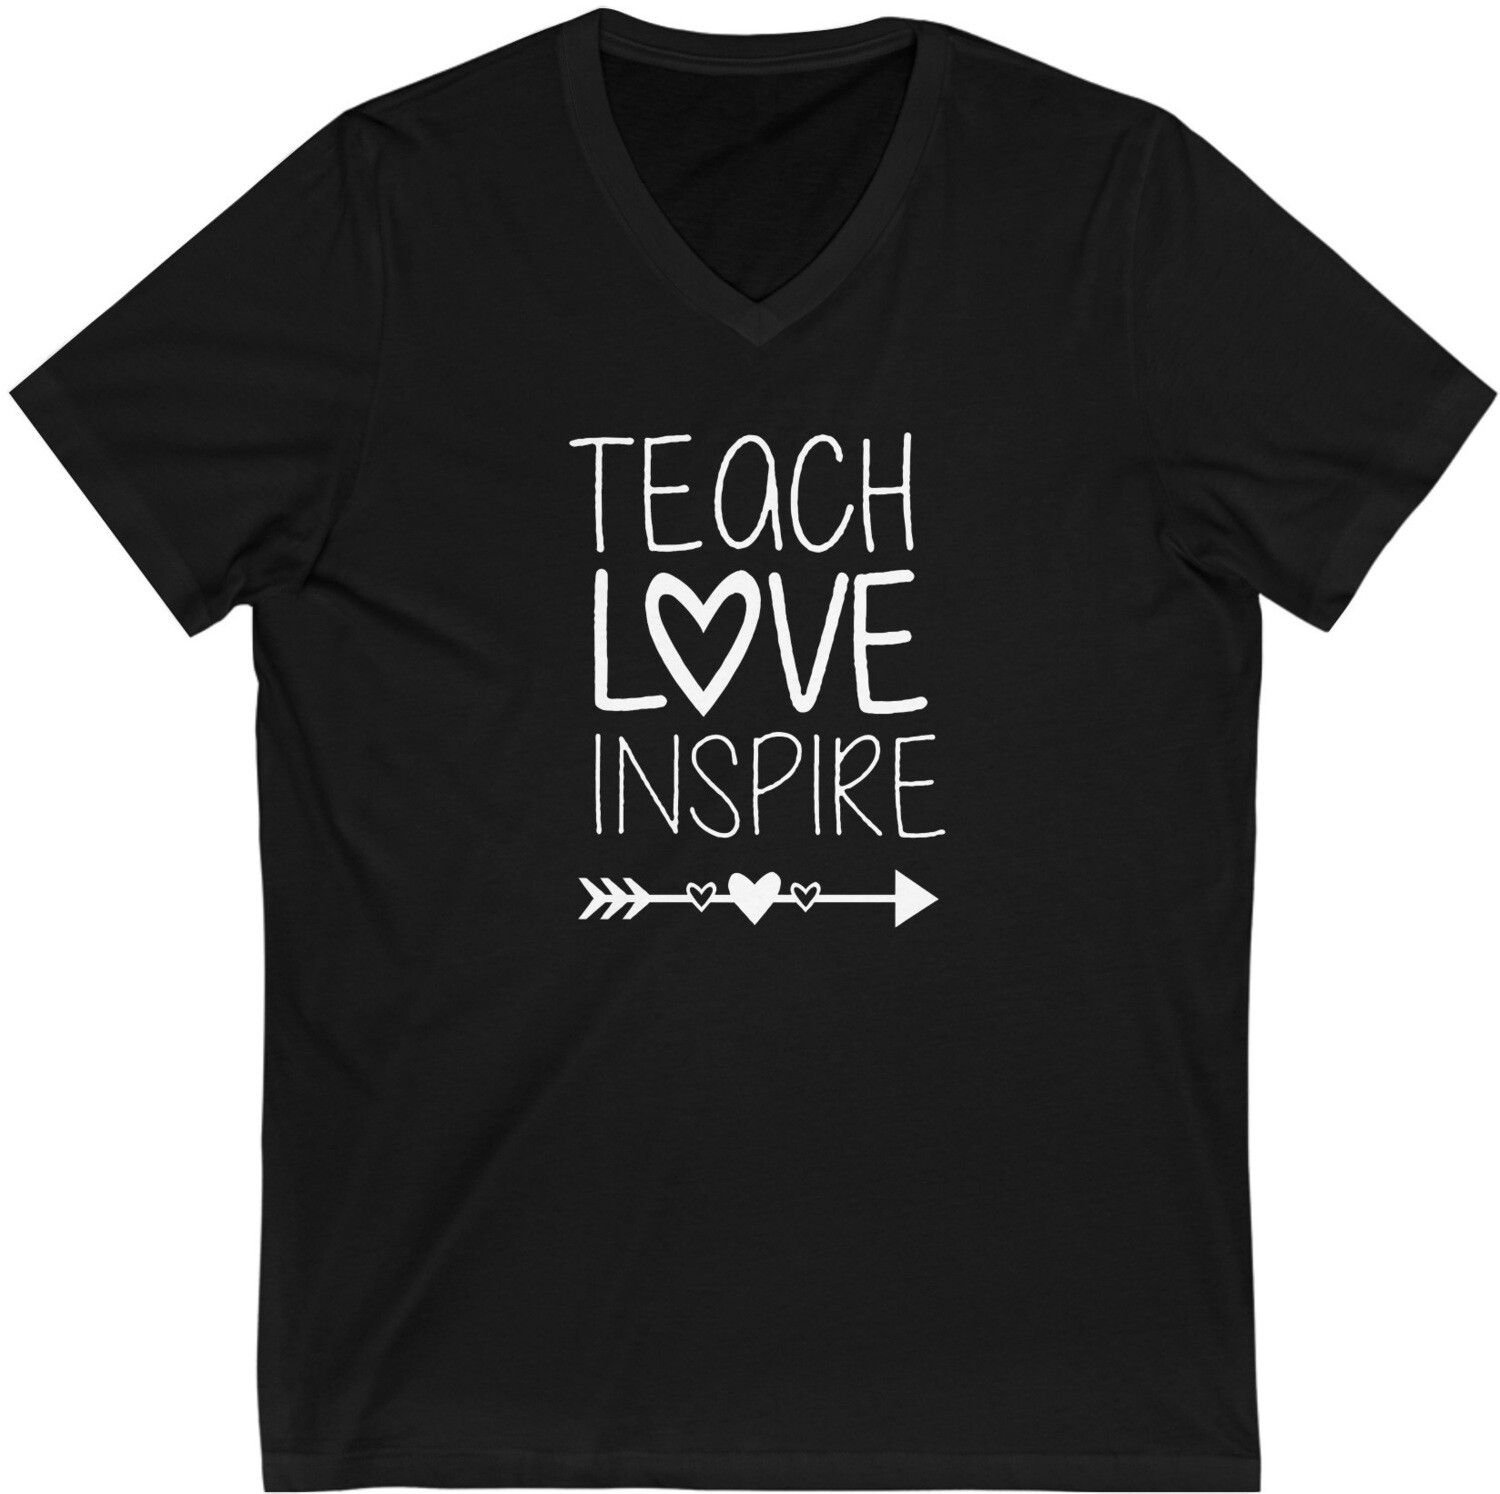 Teach Love Inspire - Adult VNeck